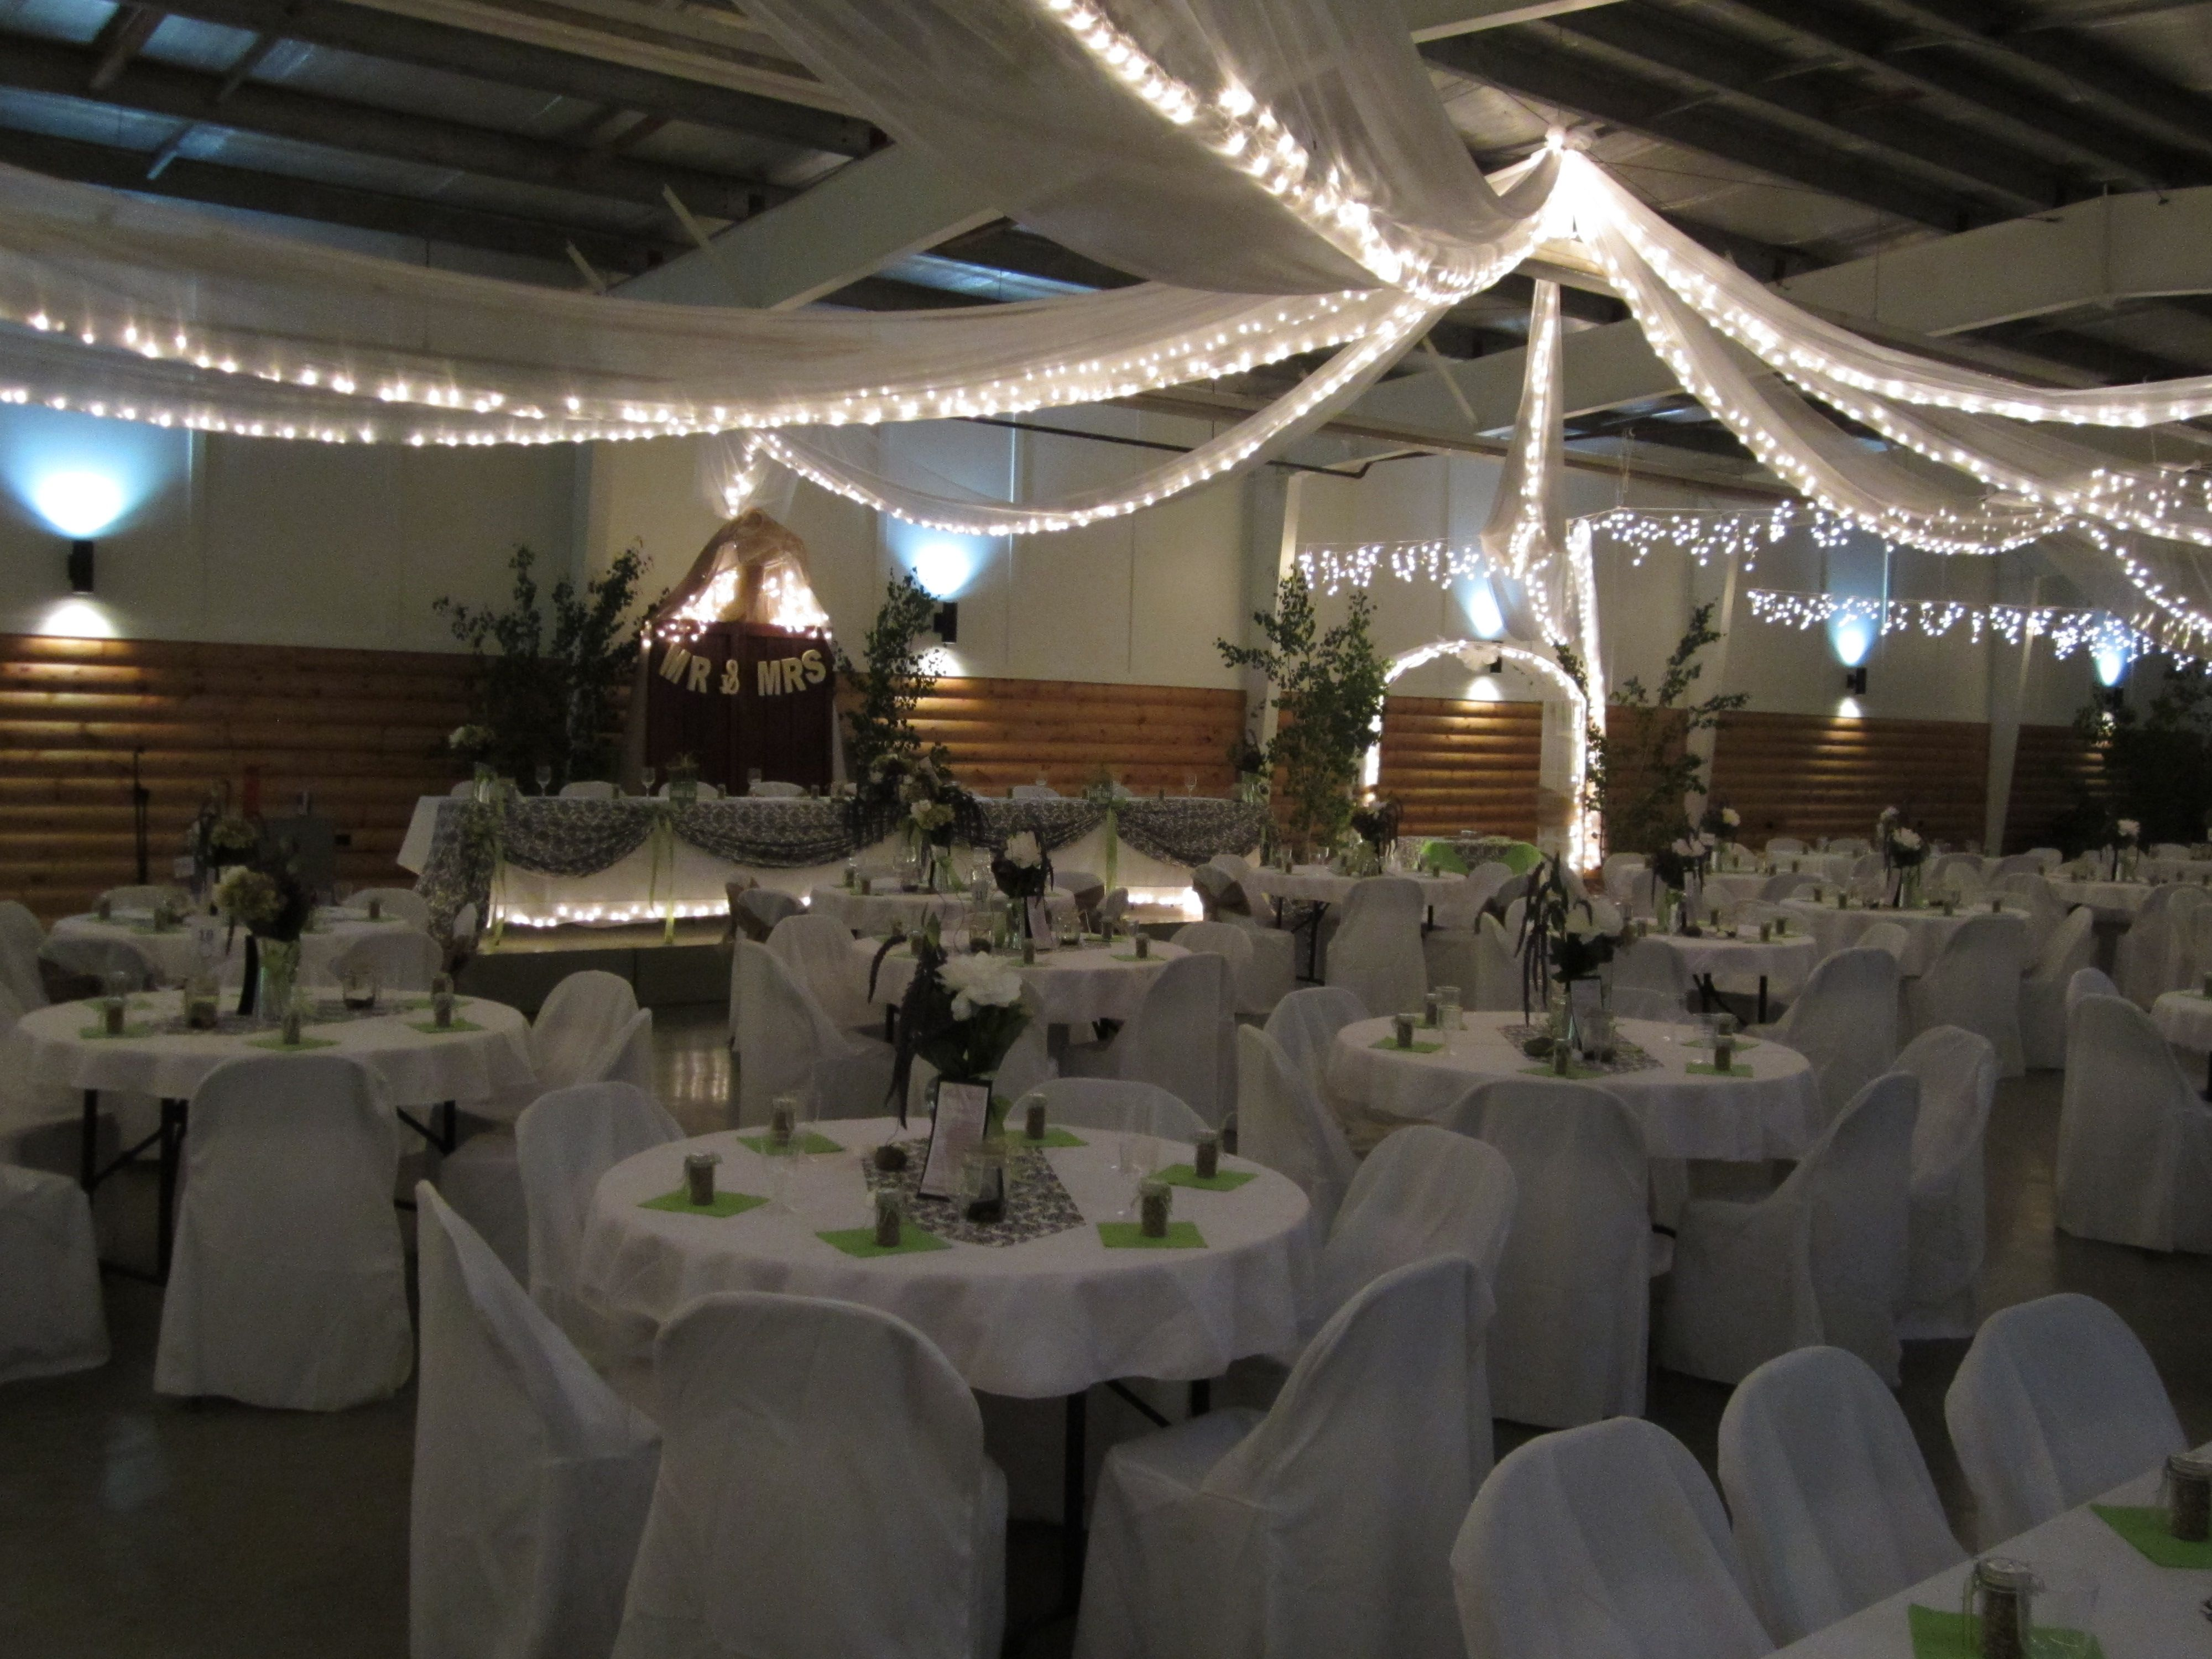 Wedding decoration ideas for hall  the hall had toule hanging yup on the roof with mini lights strung